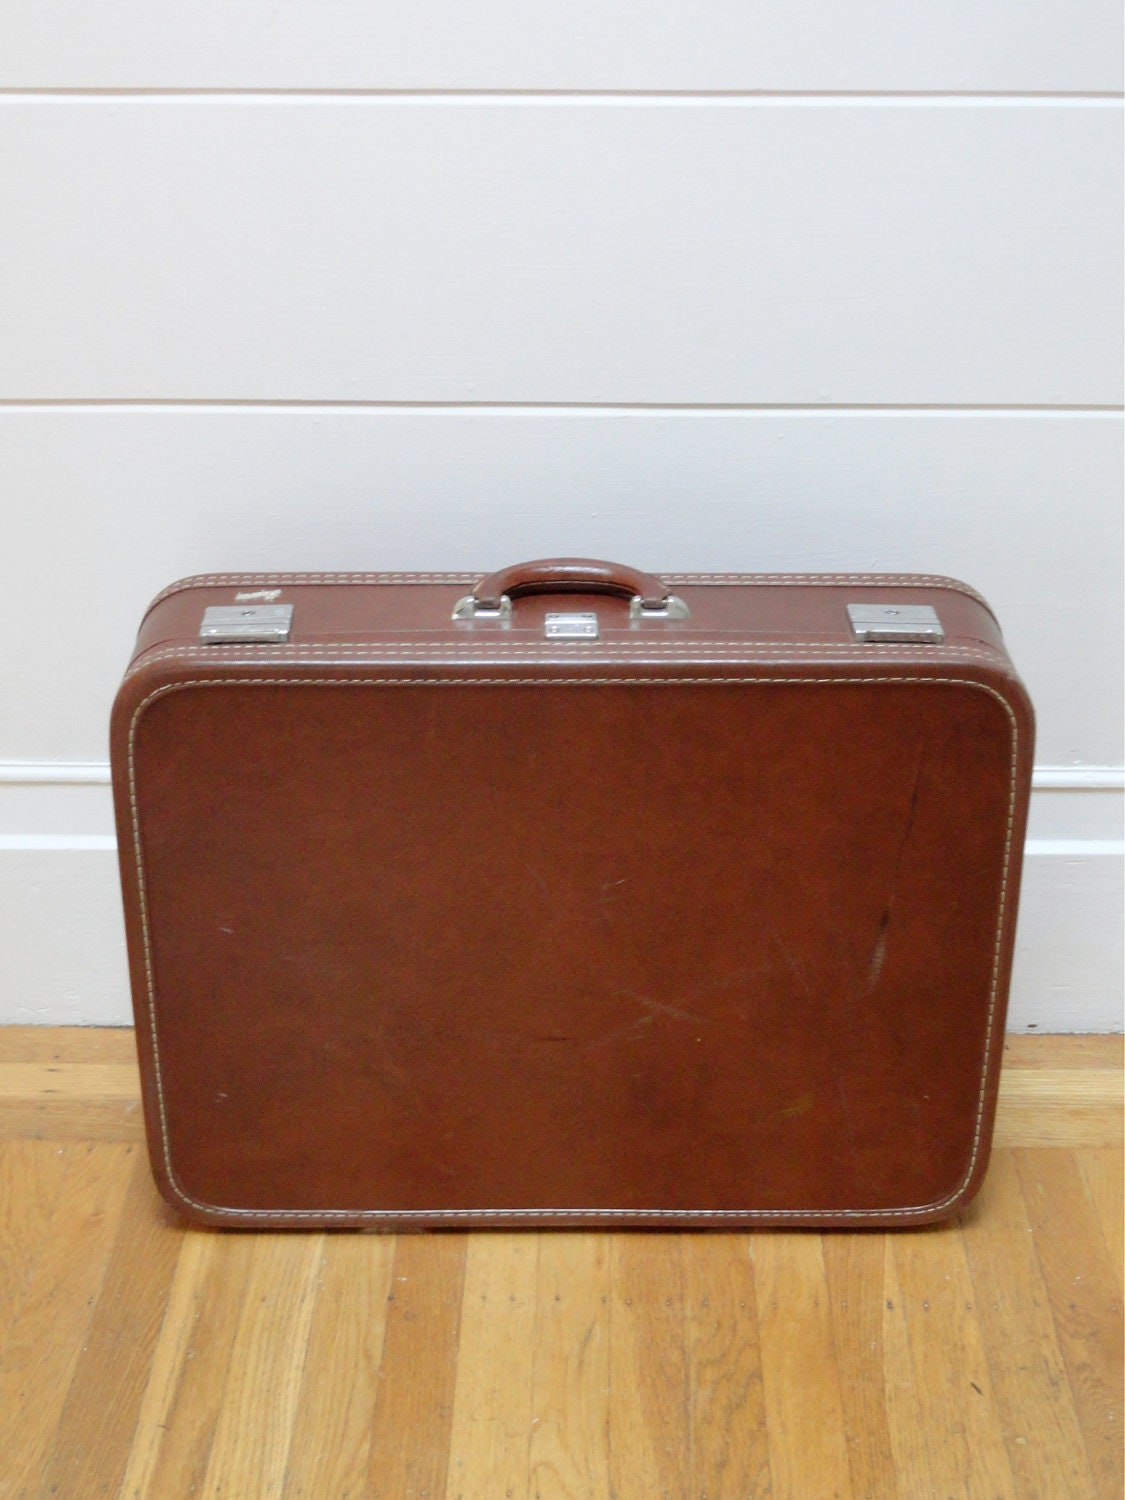 Vintage 1960's Oxblood Brown Leatherette Skyway Skinny Suitcase Luggage With Nickel & Bold Stitch Details - JoulesJewels